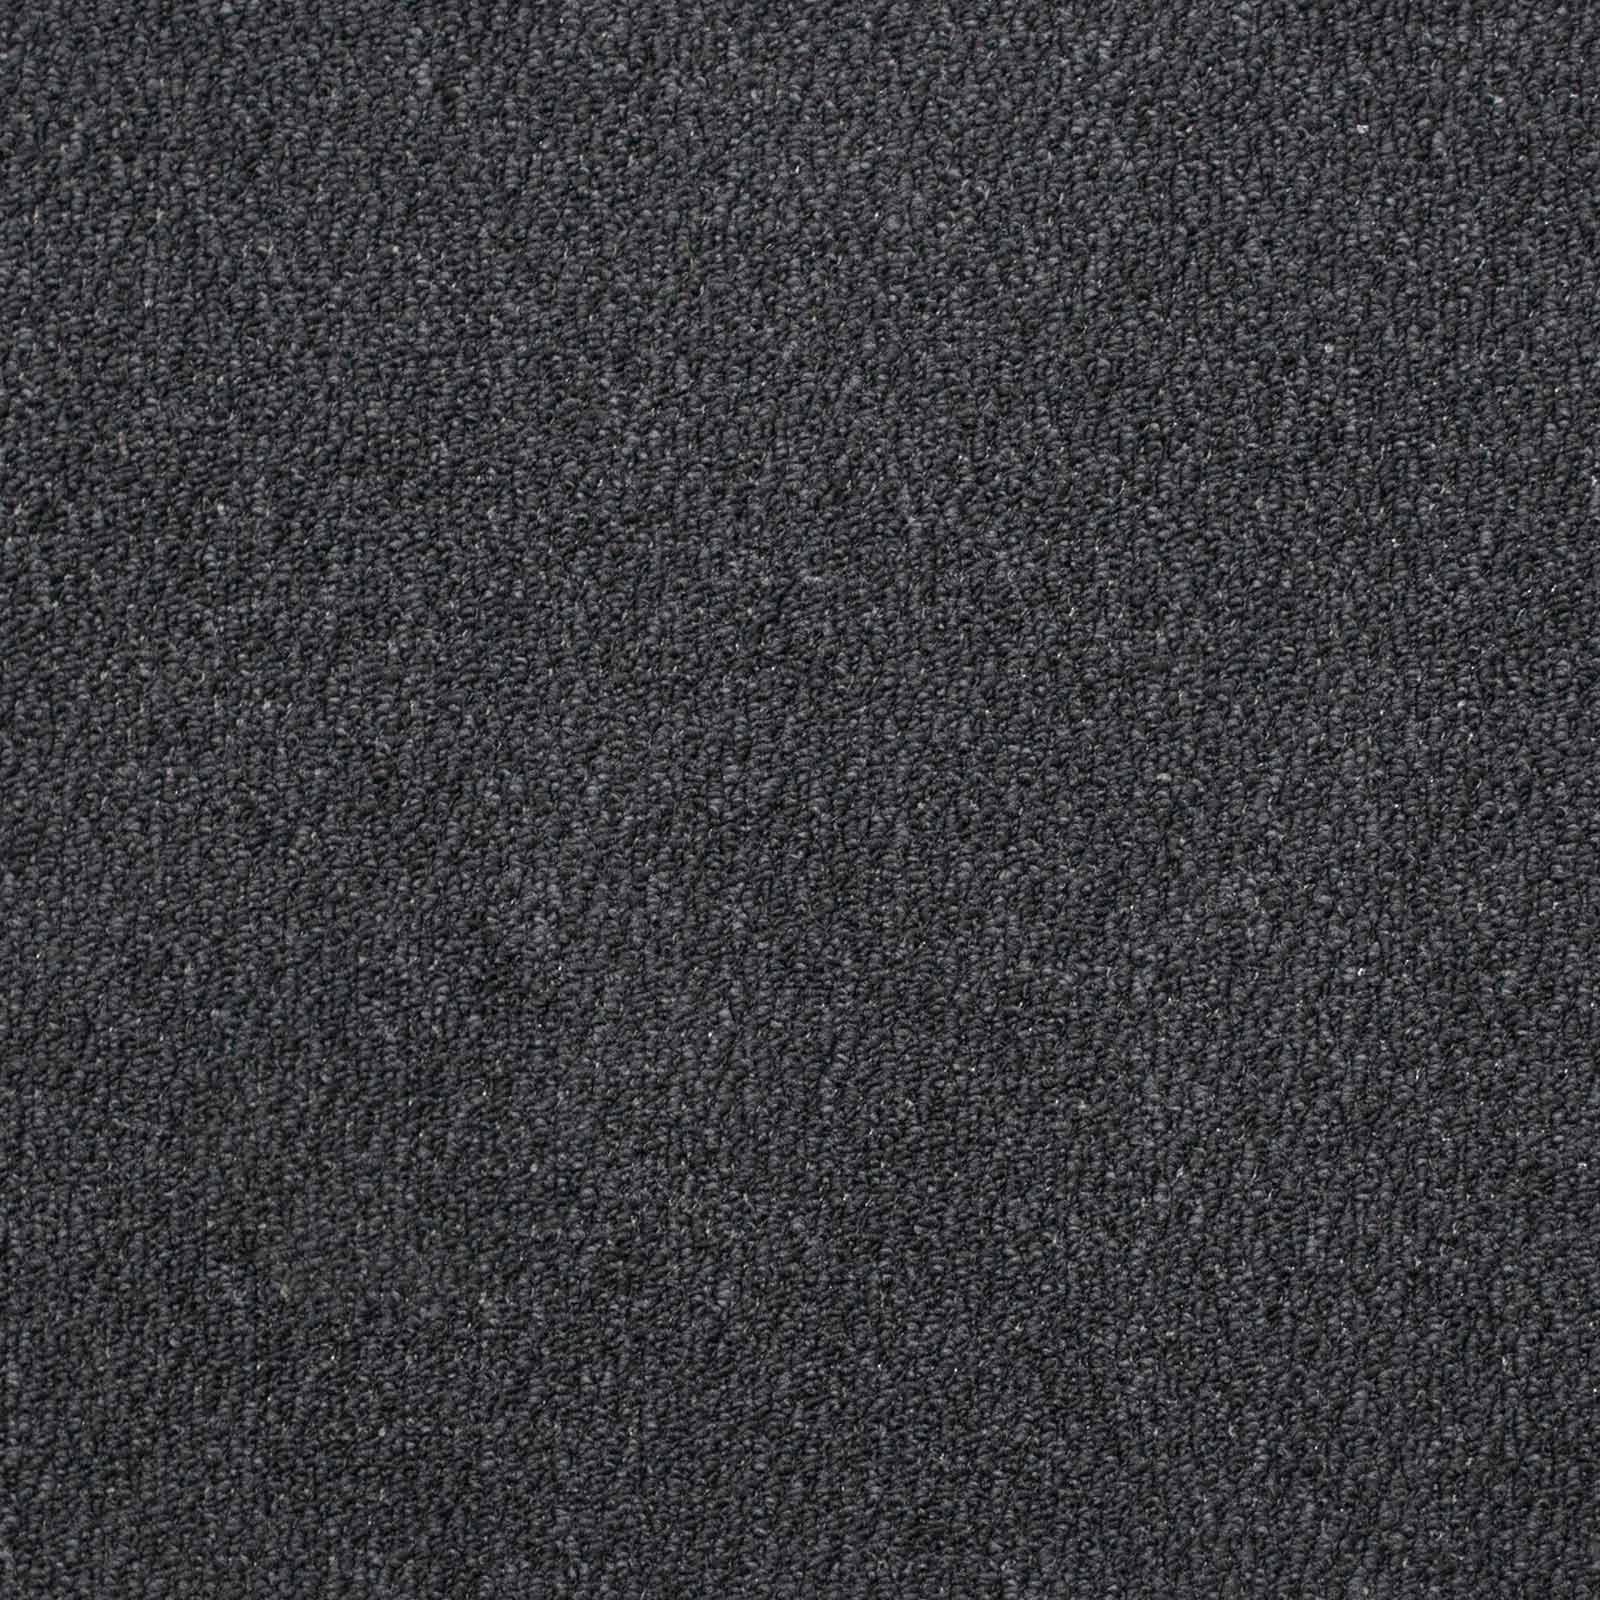 Anthracite Port Loop Carpet - Far